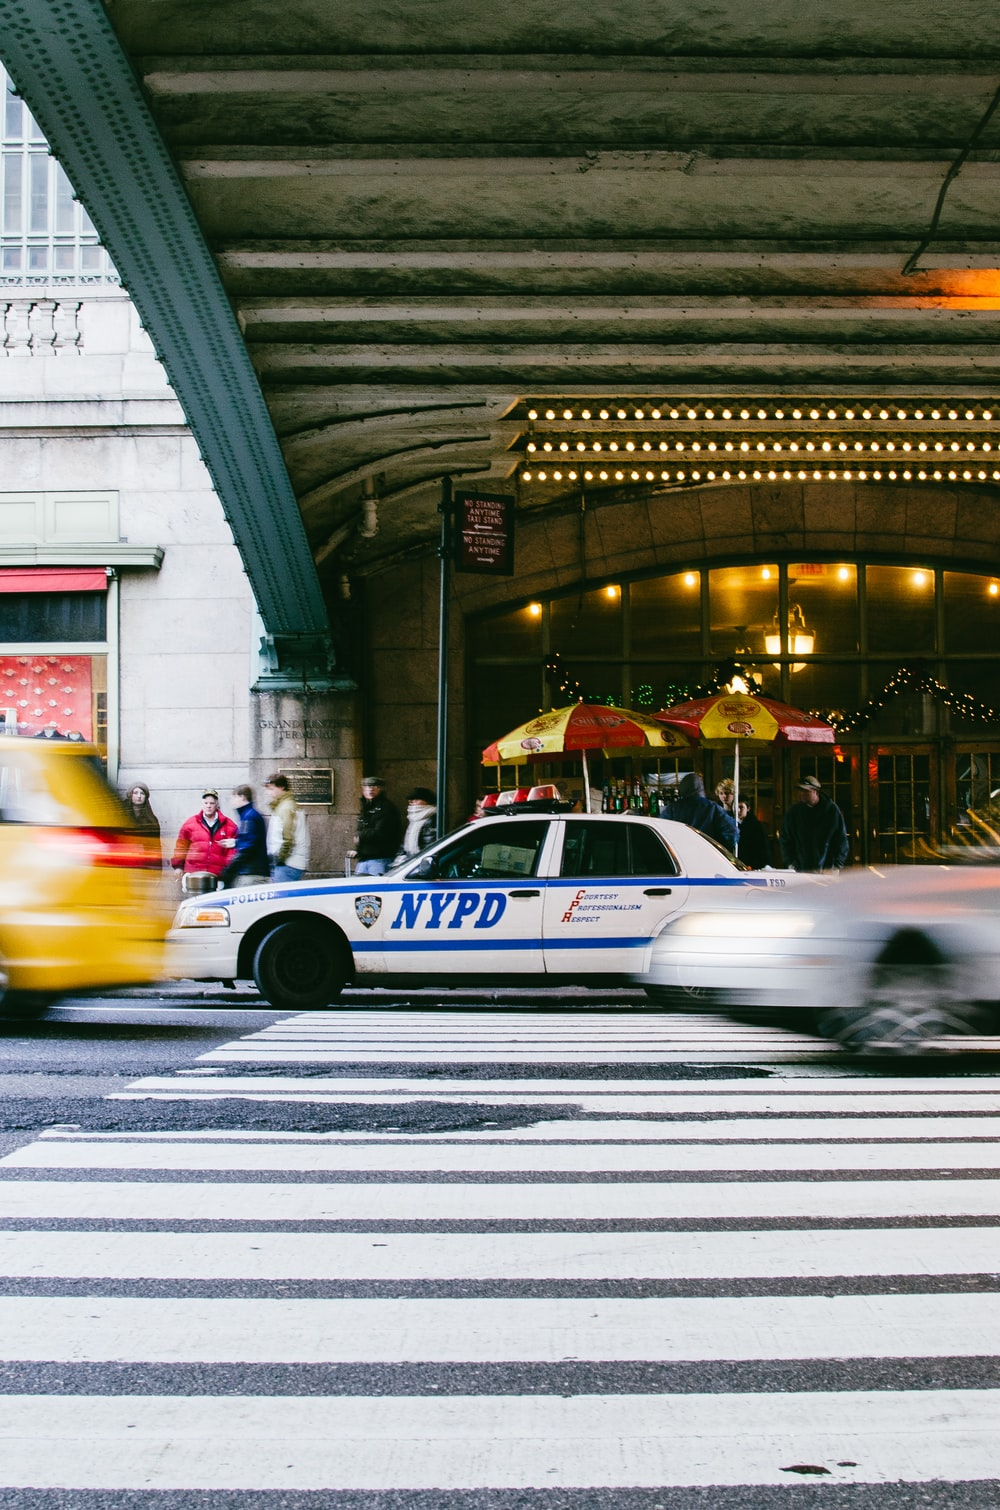 time-lapse photography of NYPD police car at pedestrian lane